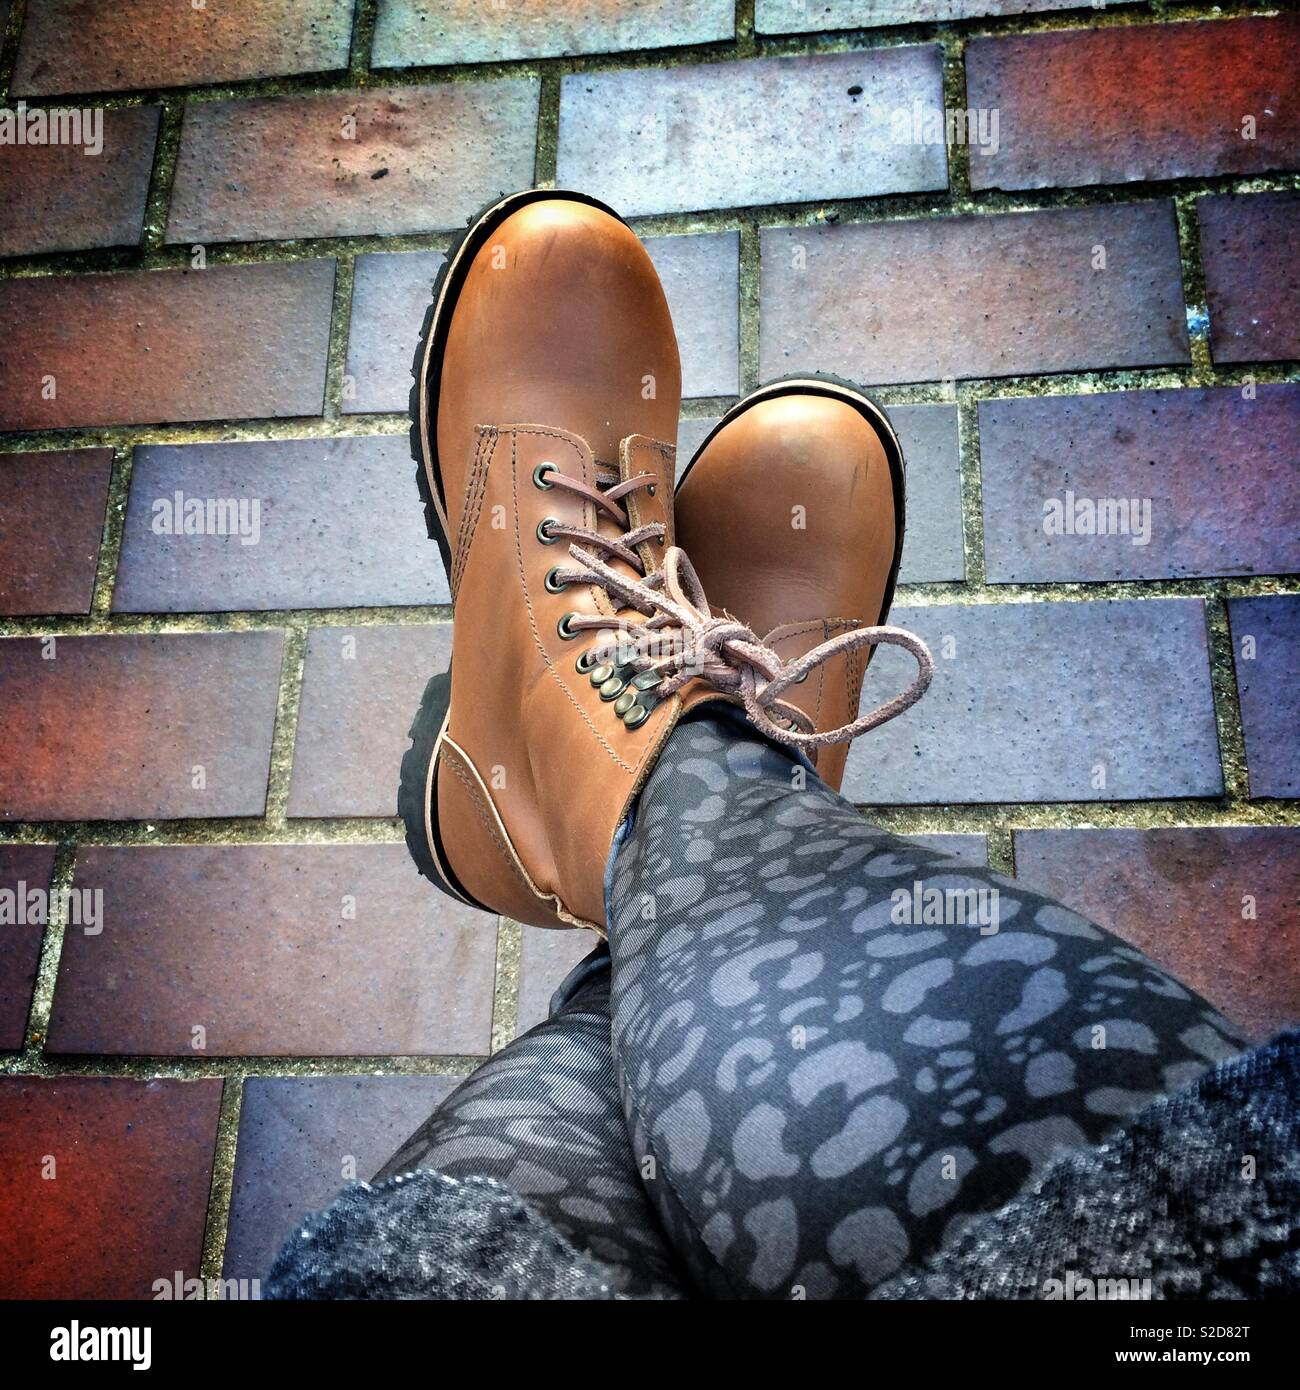 A woman's legs wearing black leopard print leggings and tan coloured lace up work boots - Stock Image